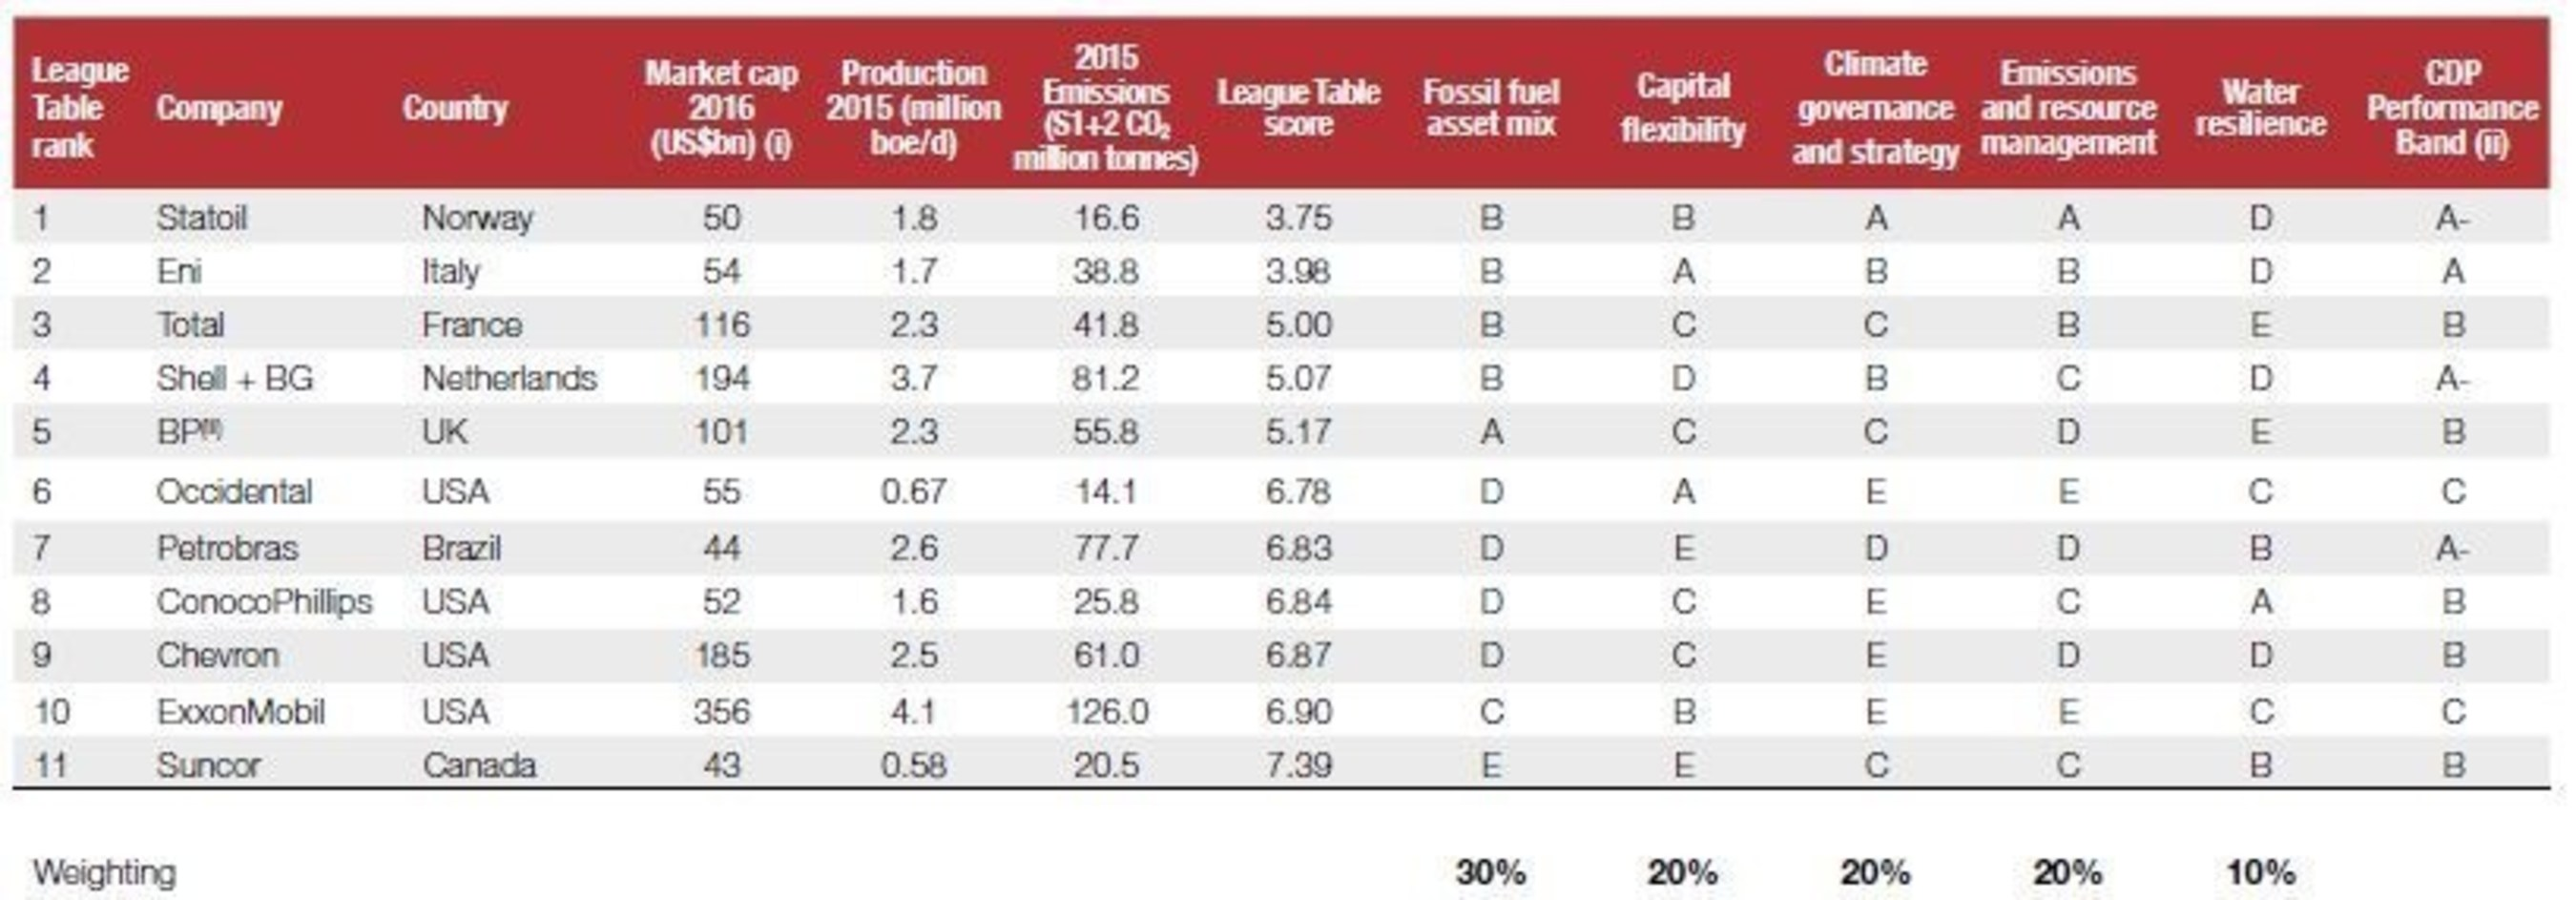 In this report we launch an oil & gas CDP League Table that ranks 11 of the largest and highest-emitting global oil & gas companies.